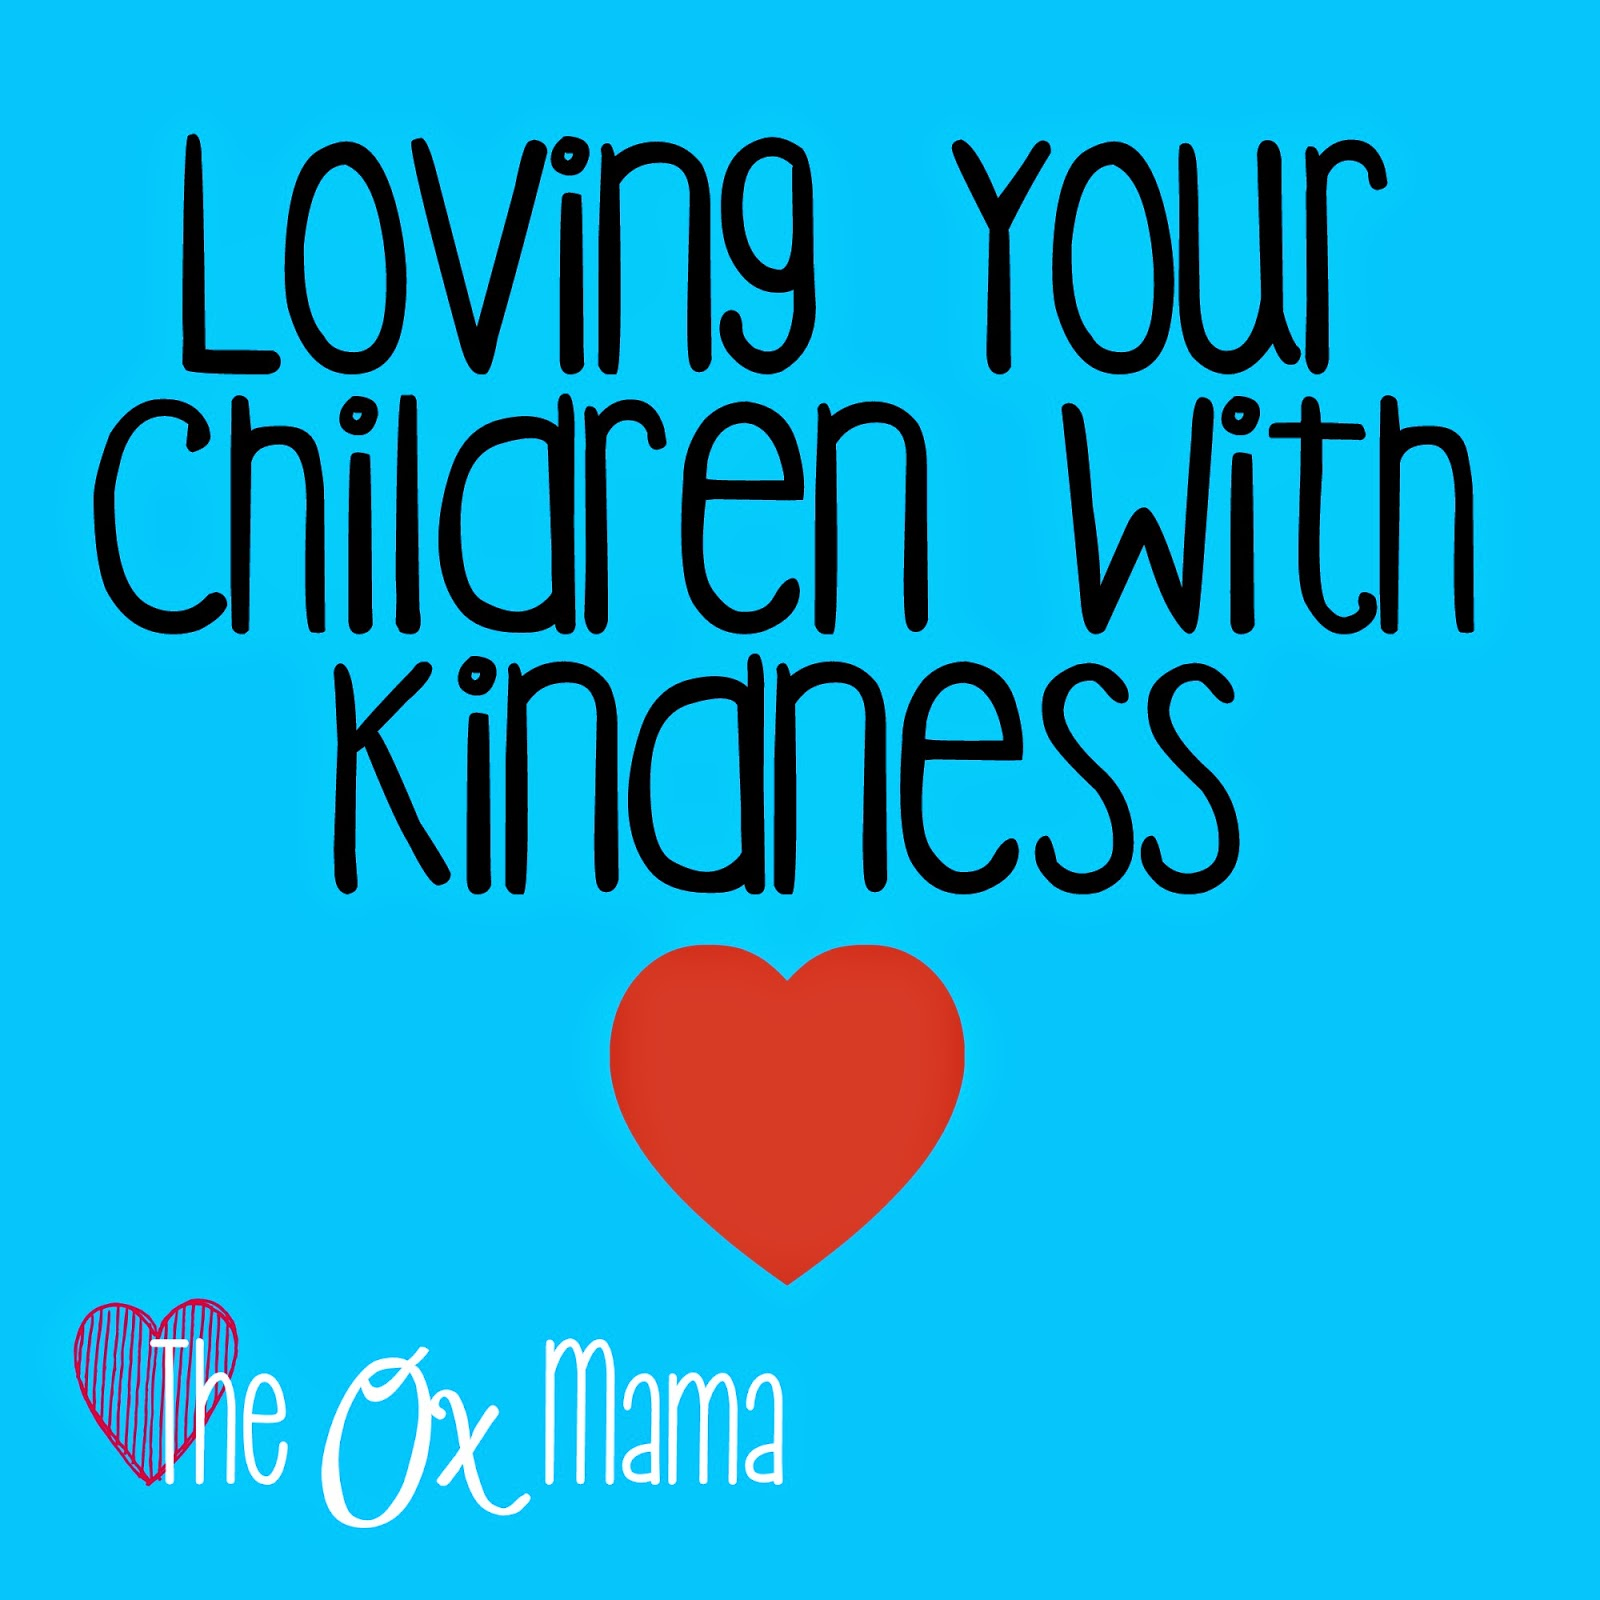 Loving your children with kindness even when they misbehave